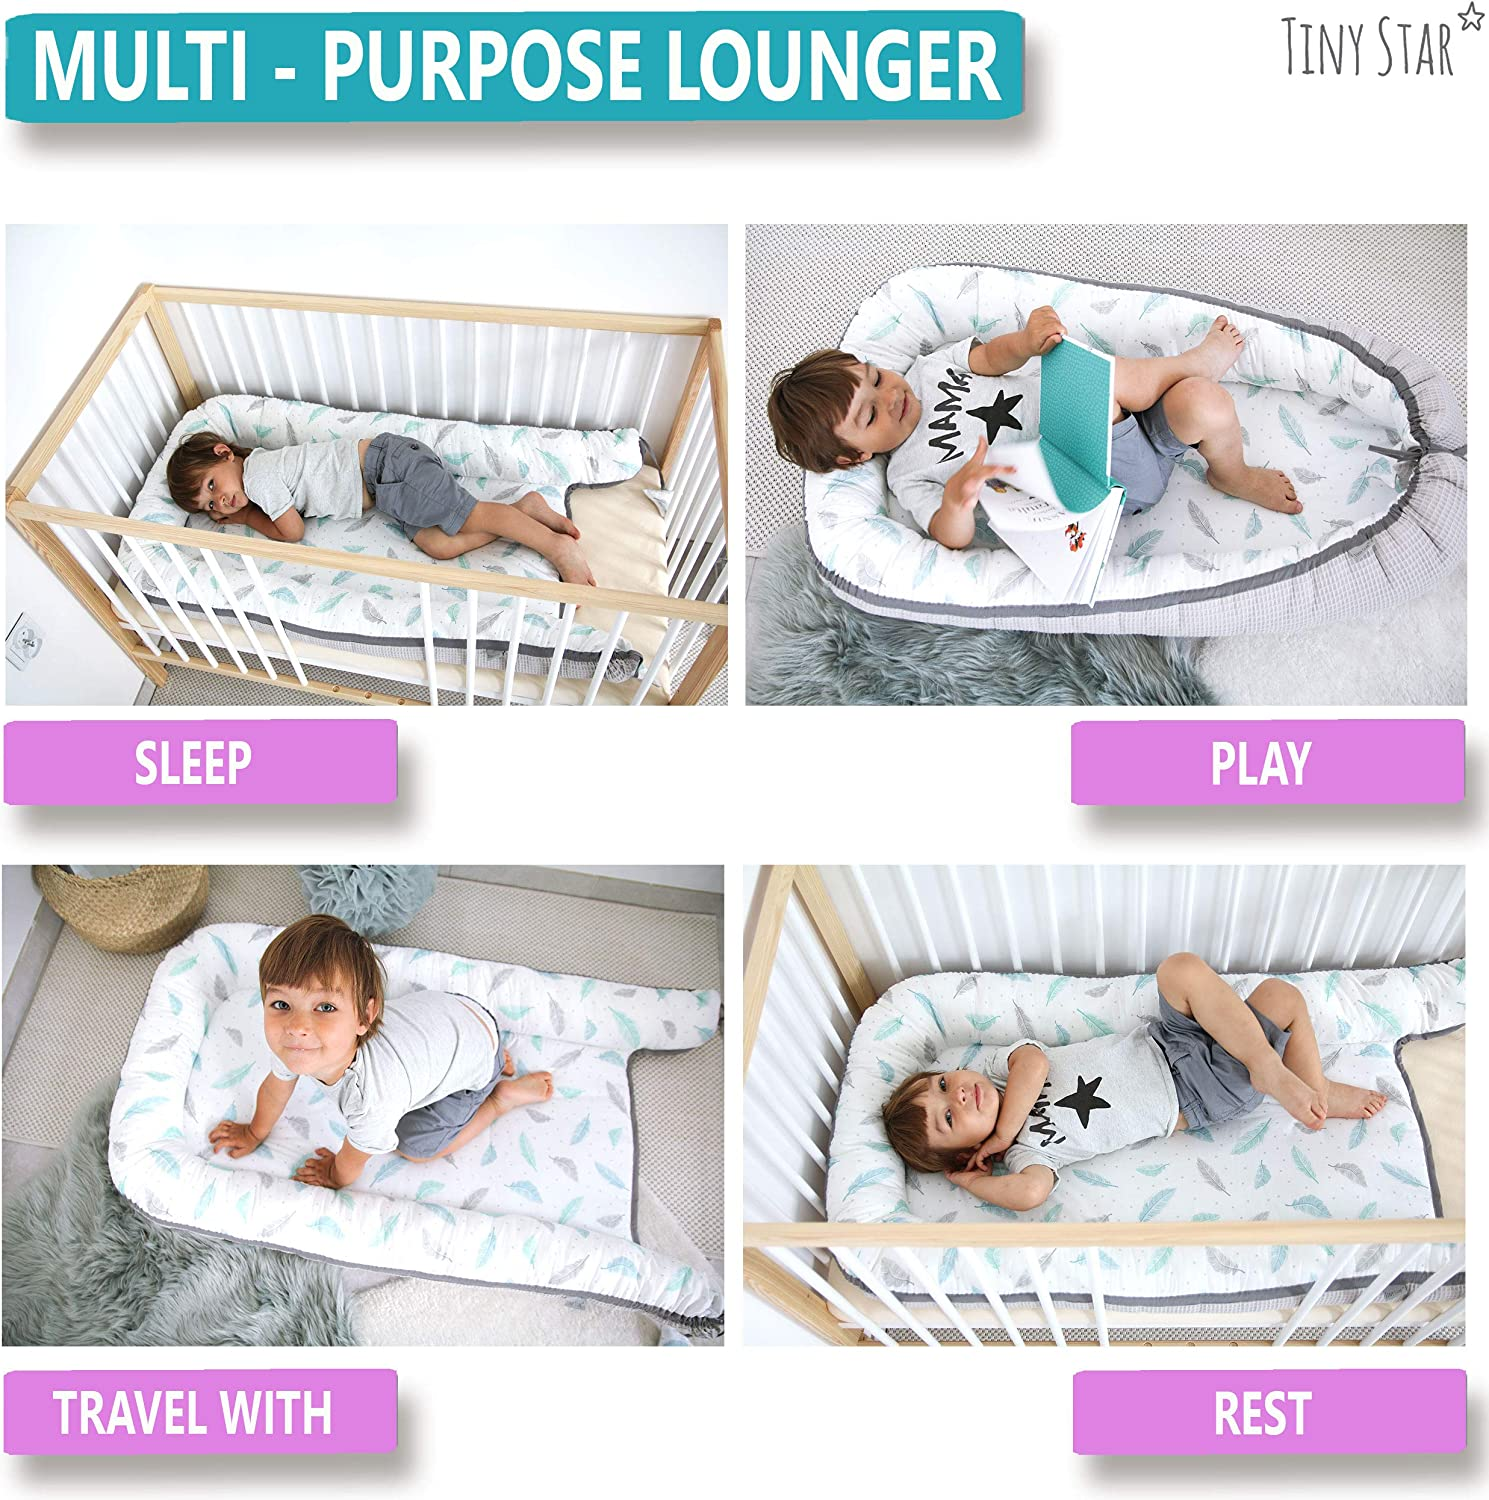 Breathable and Lightweight Large Lounger and Resting Station Toddlers Sleep Nest Bed Reducer Fully Washable XL TINY STAR: Baby Nest Pod 6 Minty Puffs 36 Months